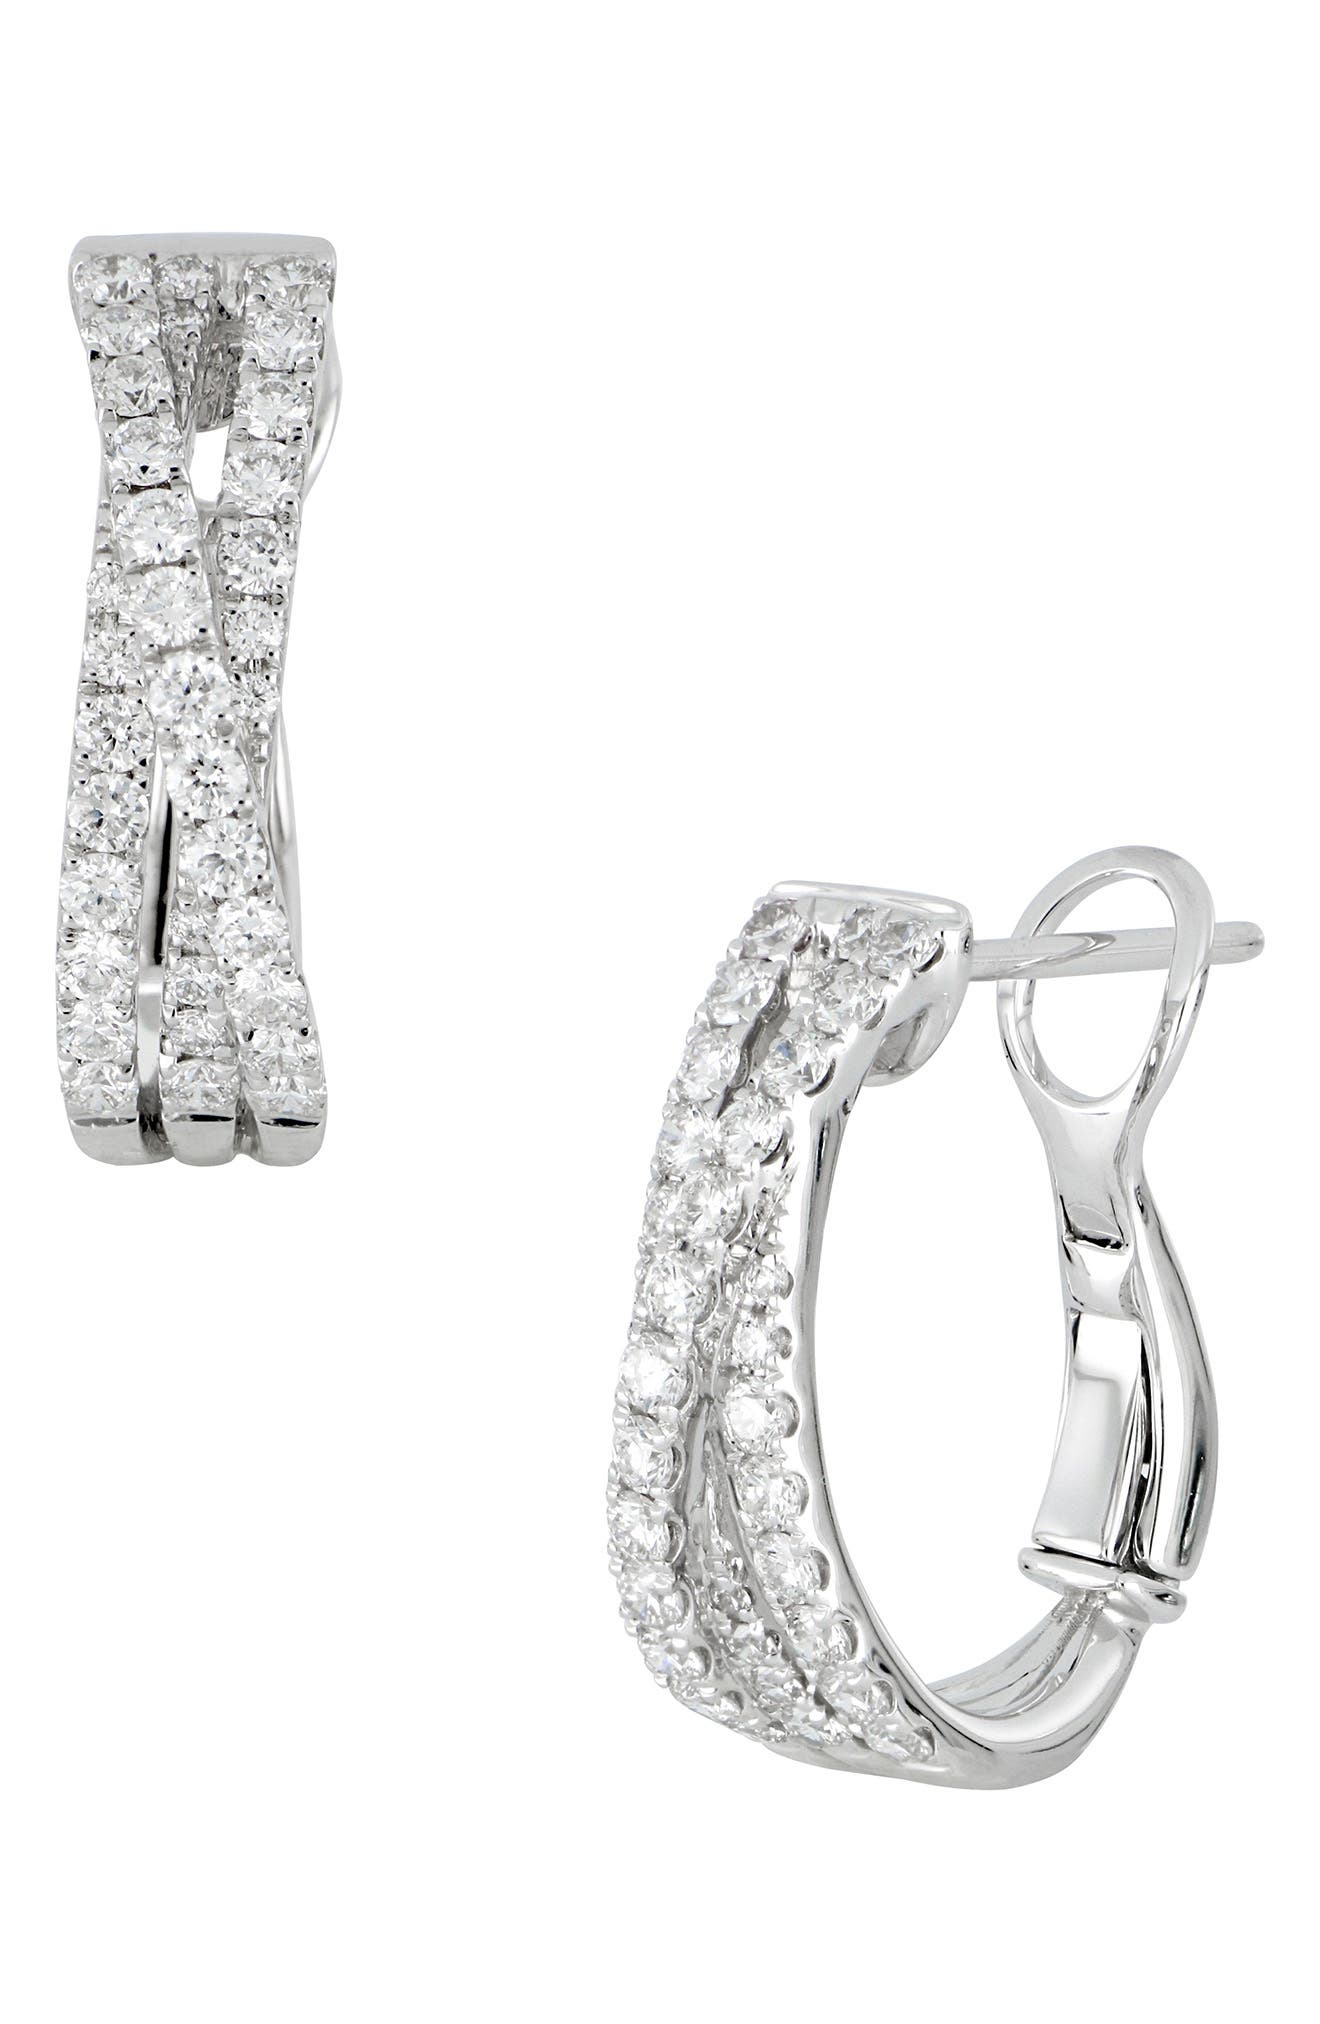 Twist Diamond Hoop Earrings,                             Main thumbnail 1, color,                             WHITE GOLD/ DIAMOND